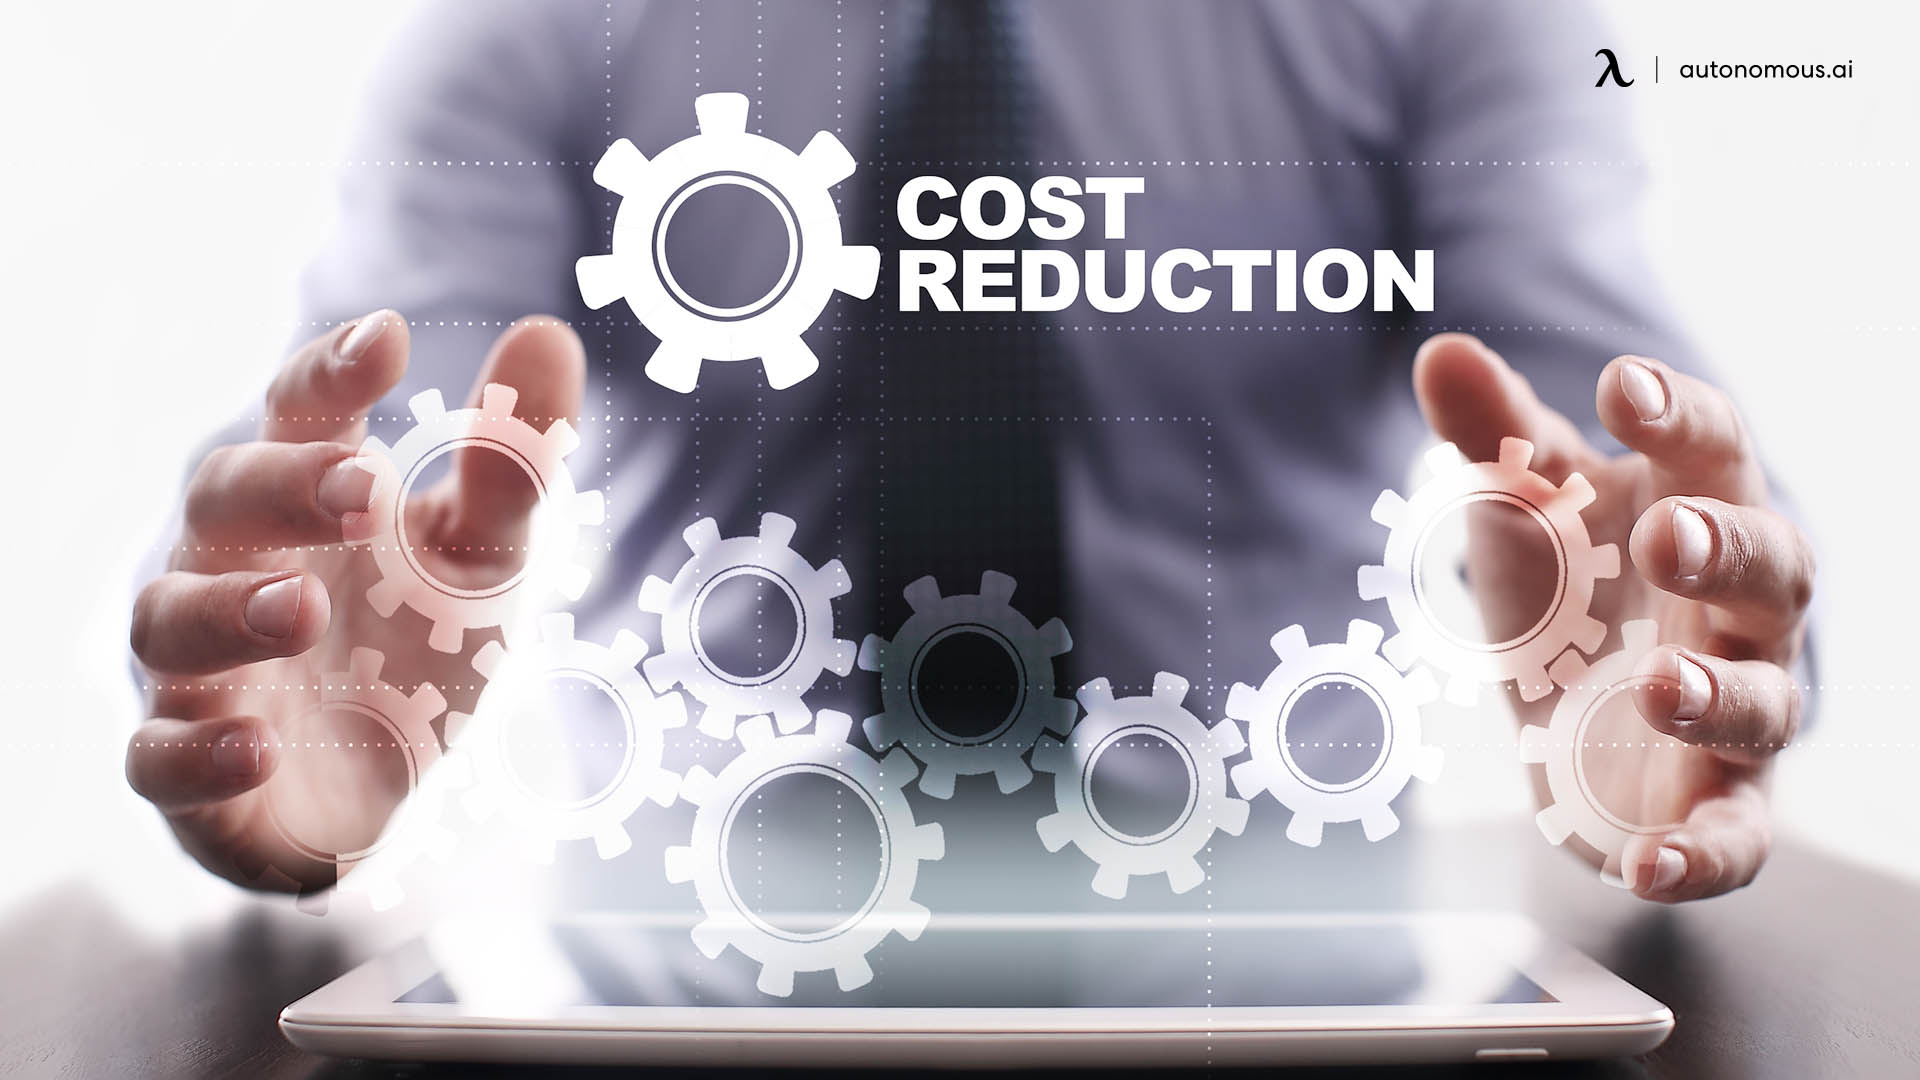 Reduction in overhead cost